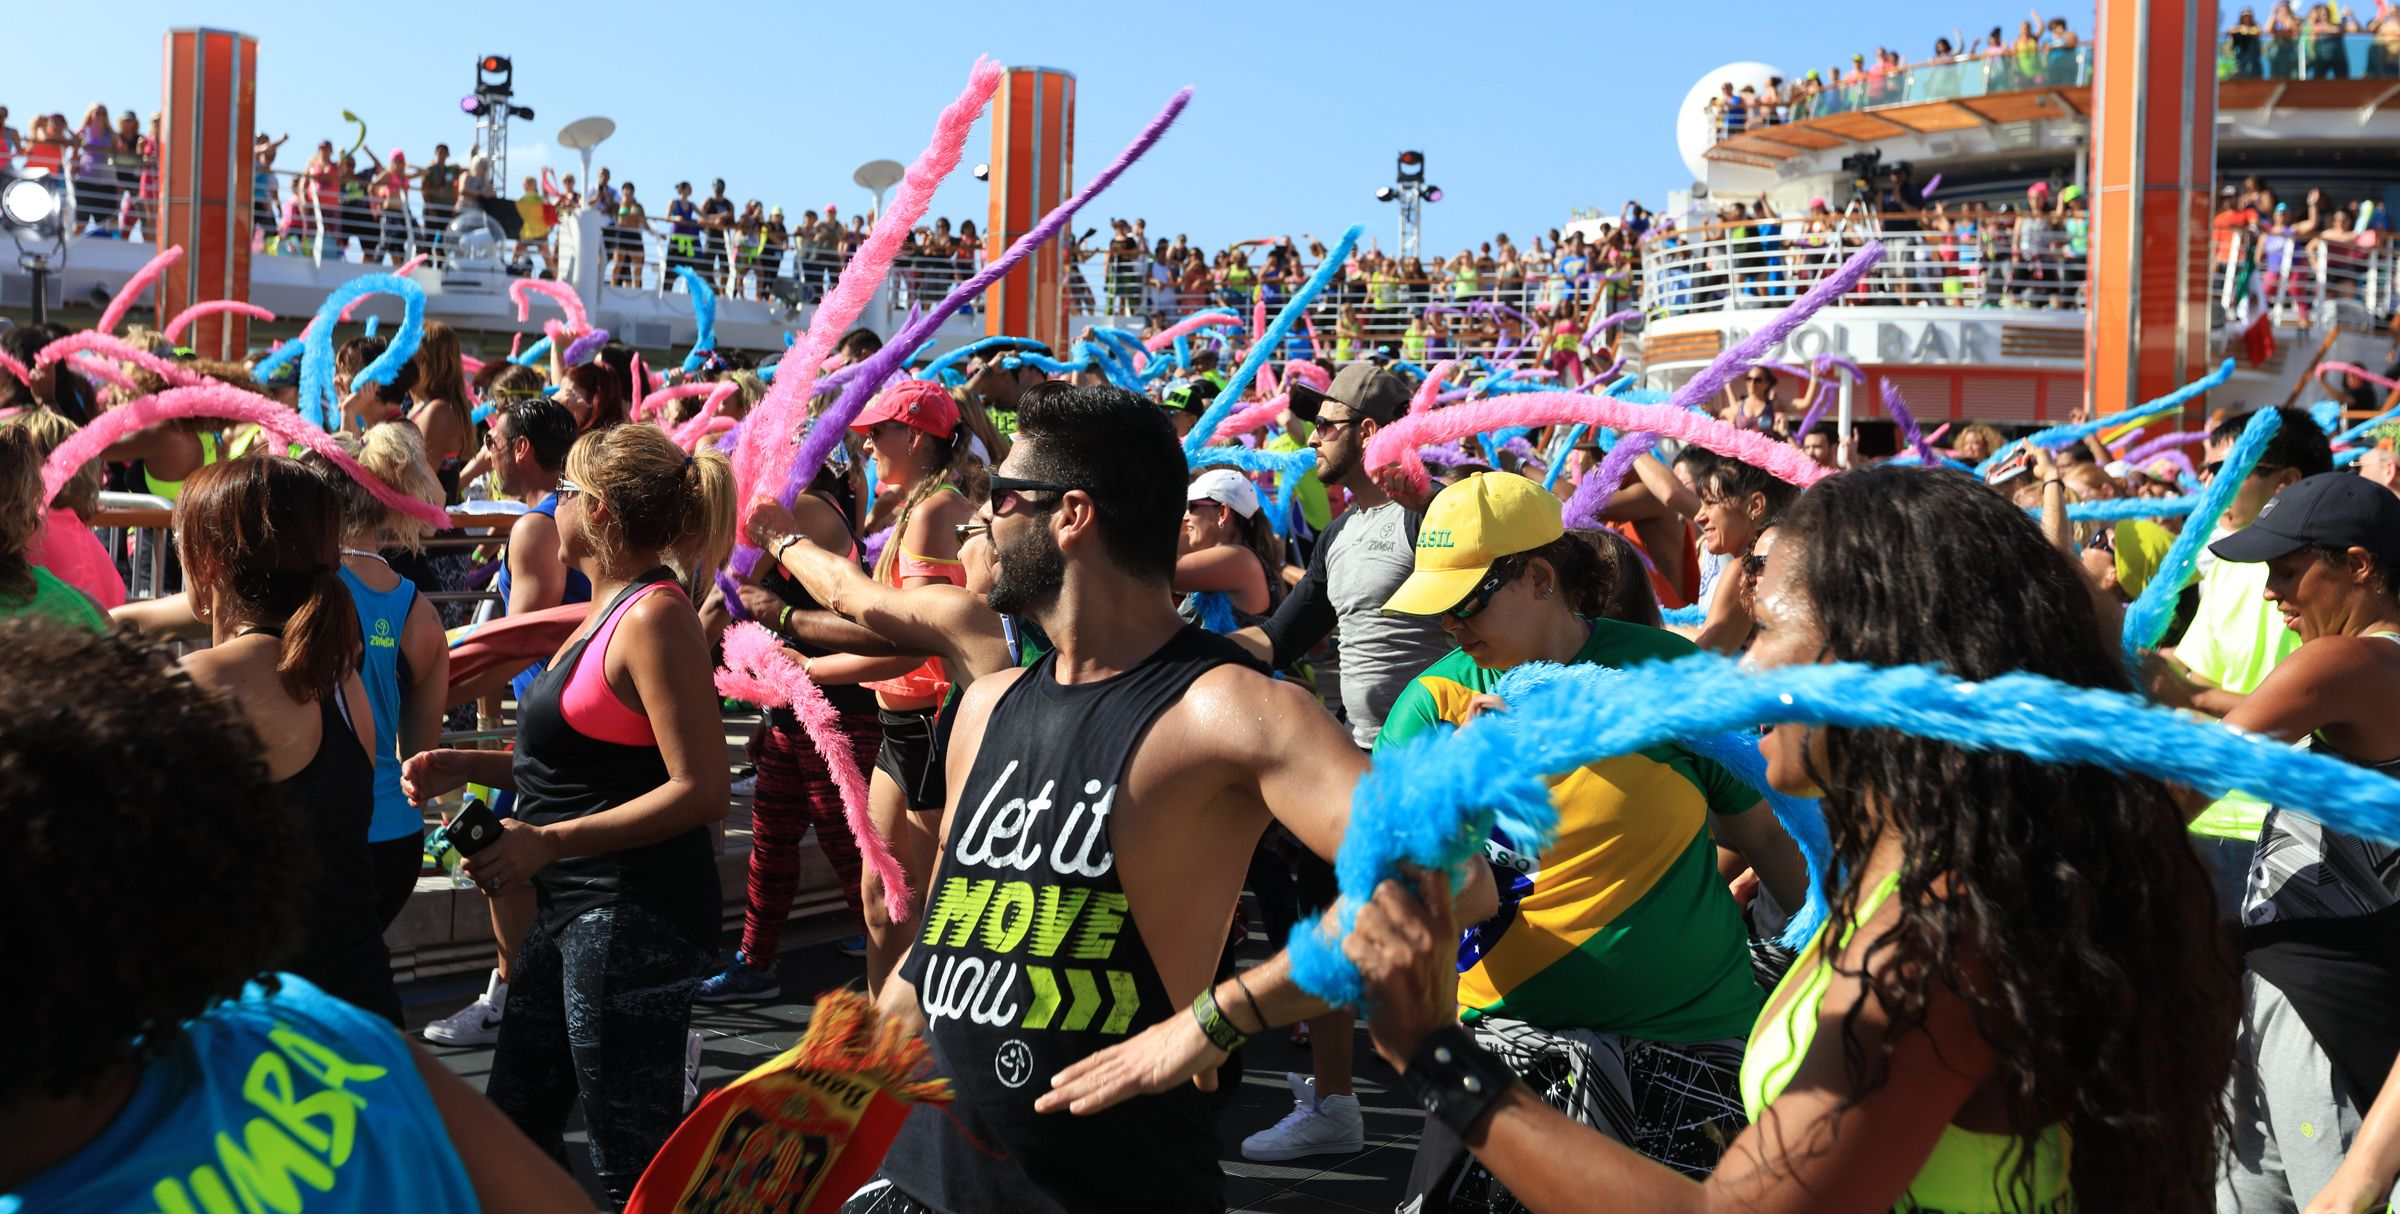 For five unforgettable days, you'll have the time of your life and celebrate every moment on the funnest (and fittest) cruise ever. Dance, party, learn, relax and unwind as you make the memories of a lifetime.